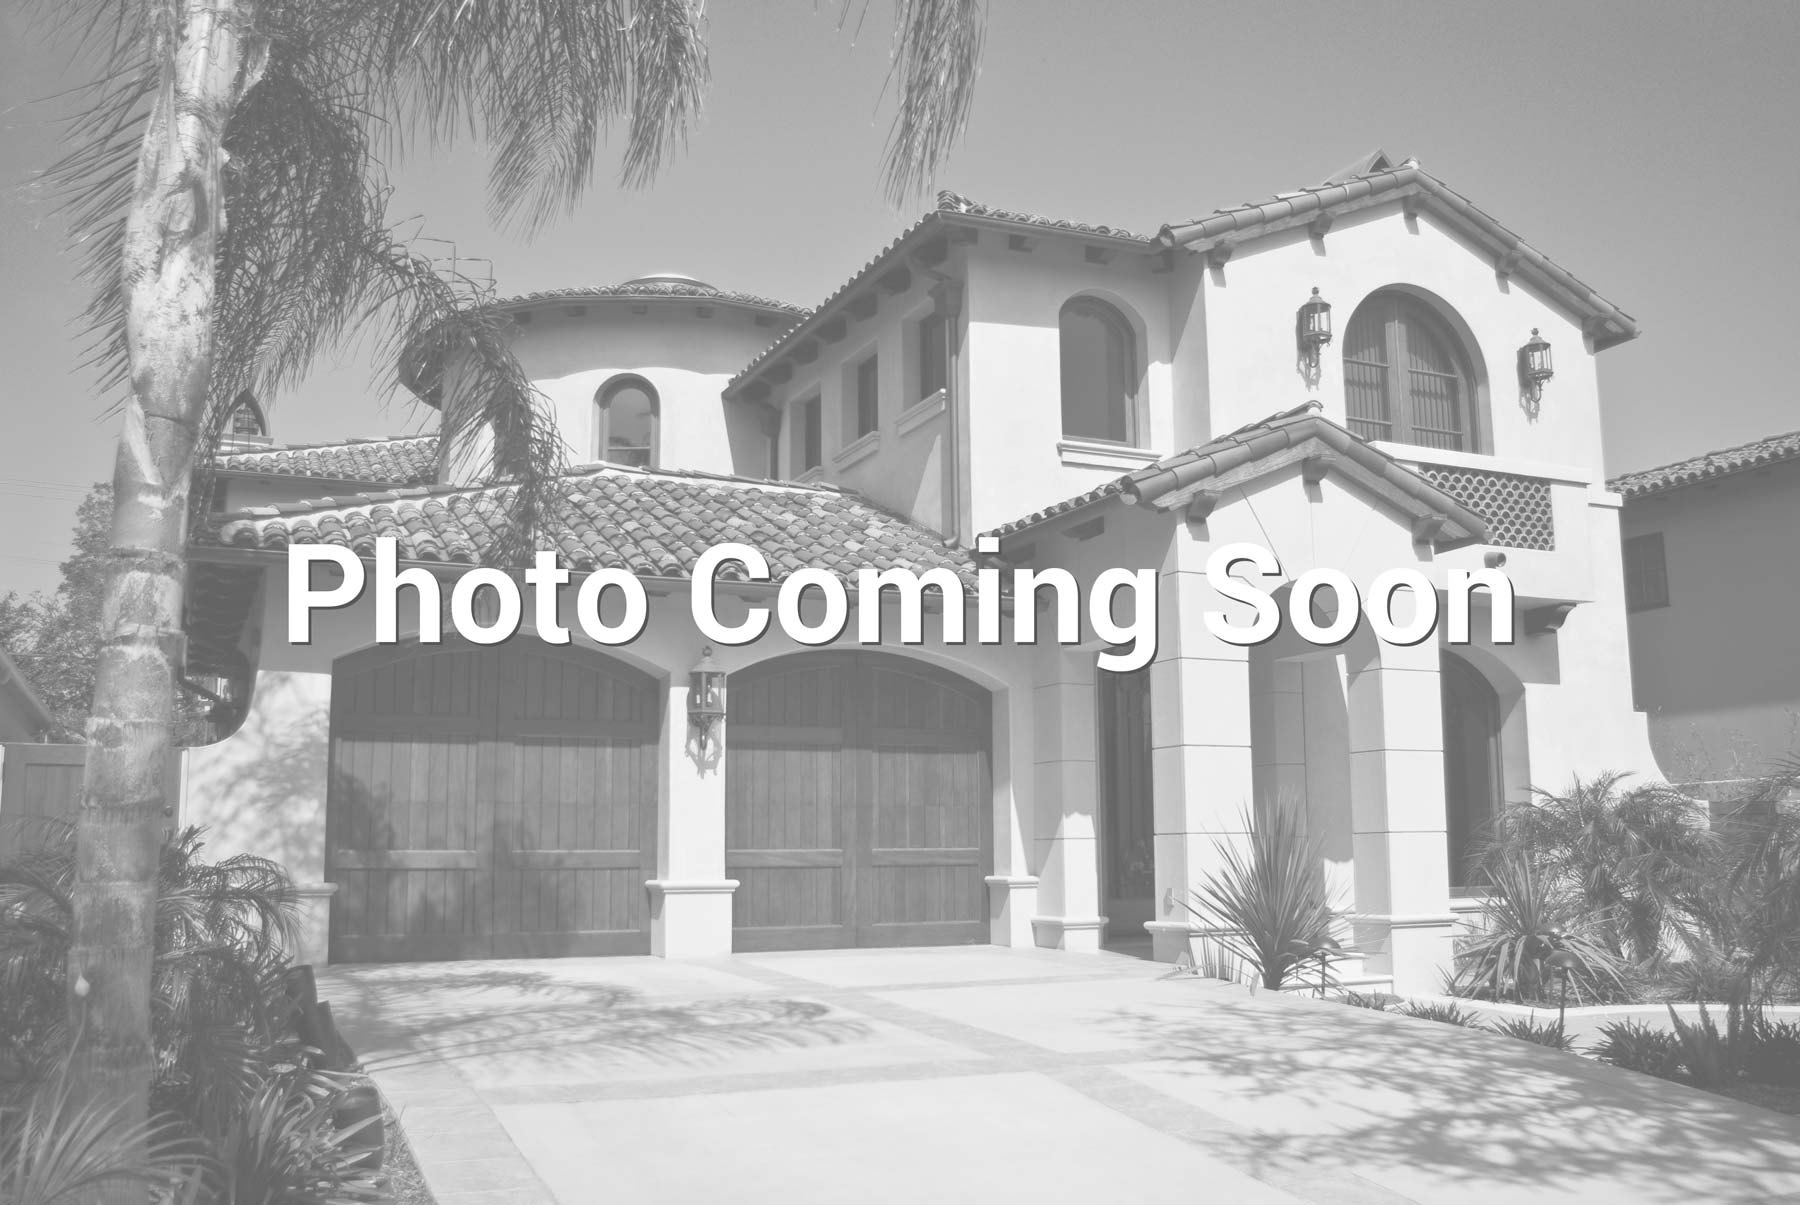 $379,900 - 4Br/3Ba - Home for Sale in Arrowhead Ranch, Glendale